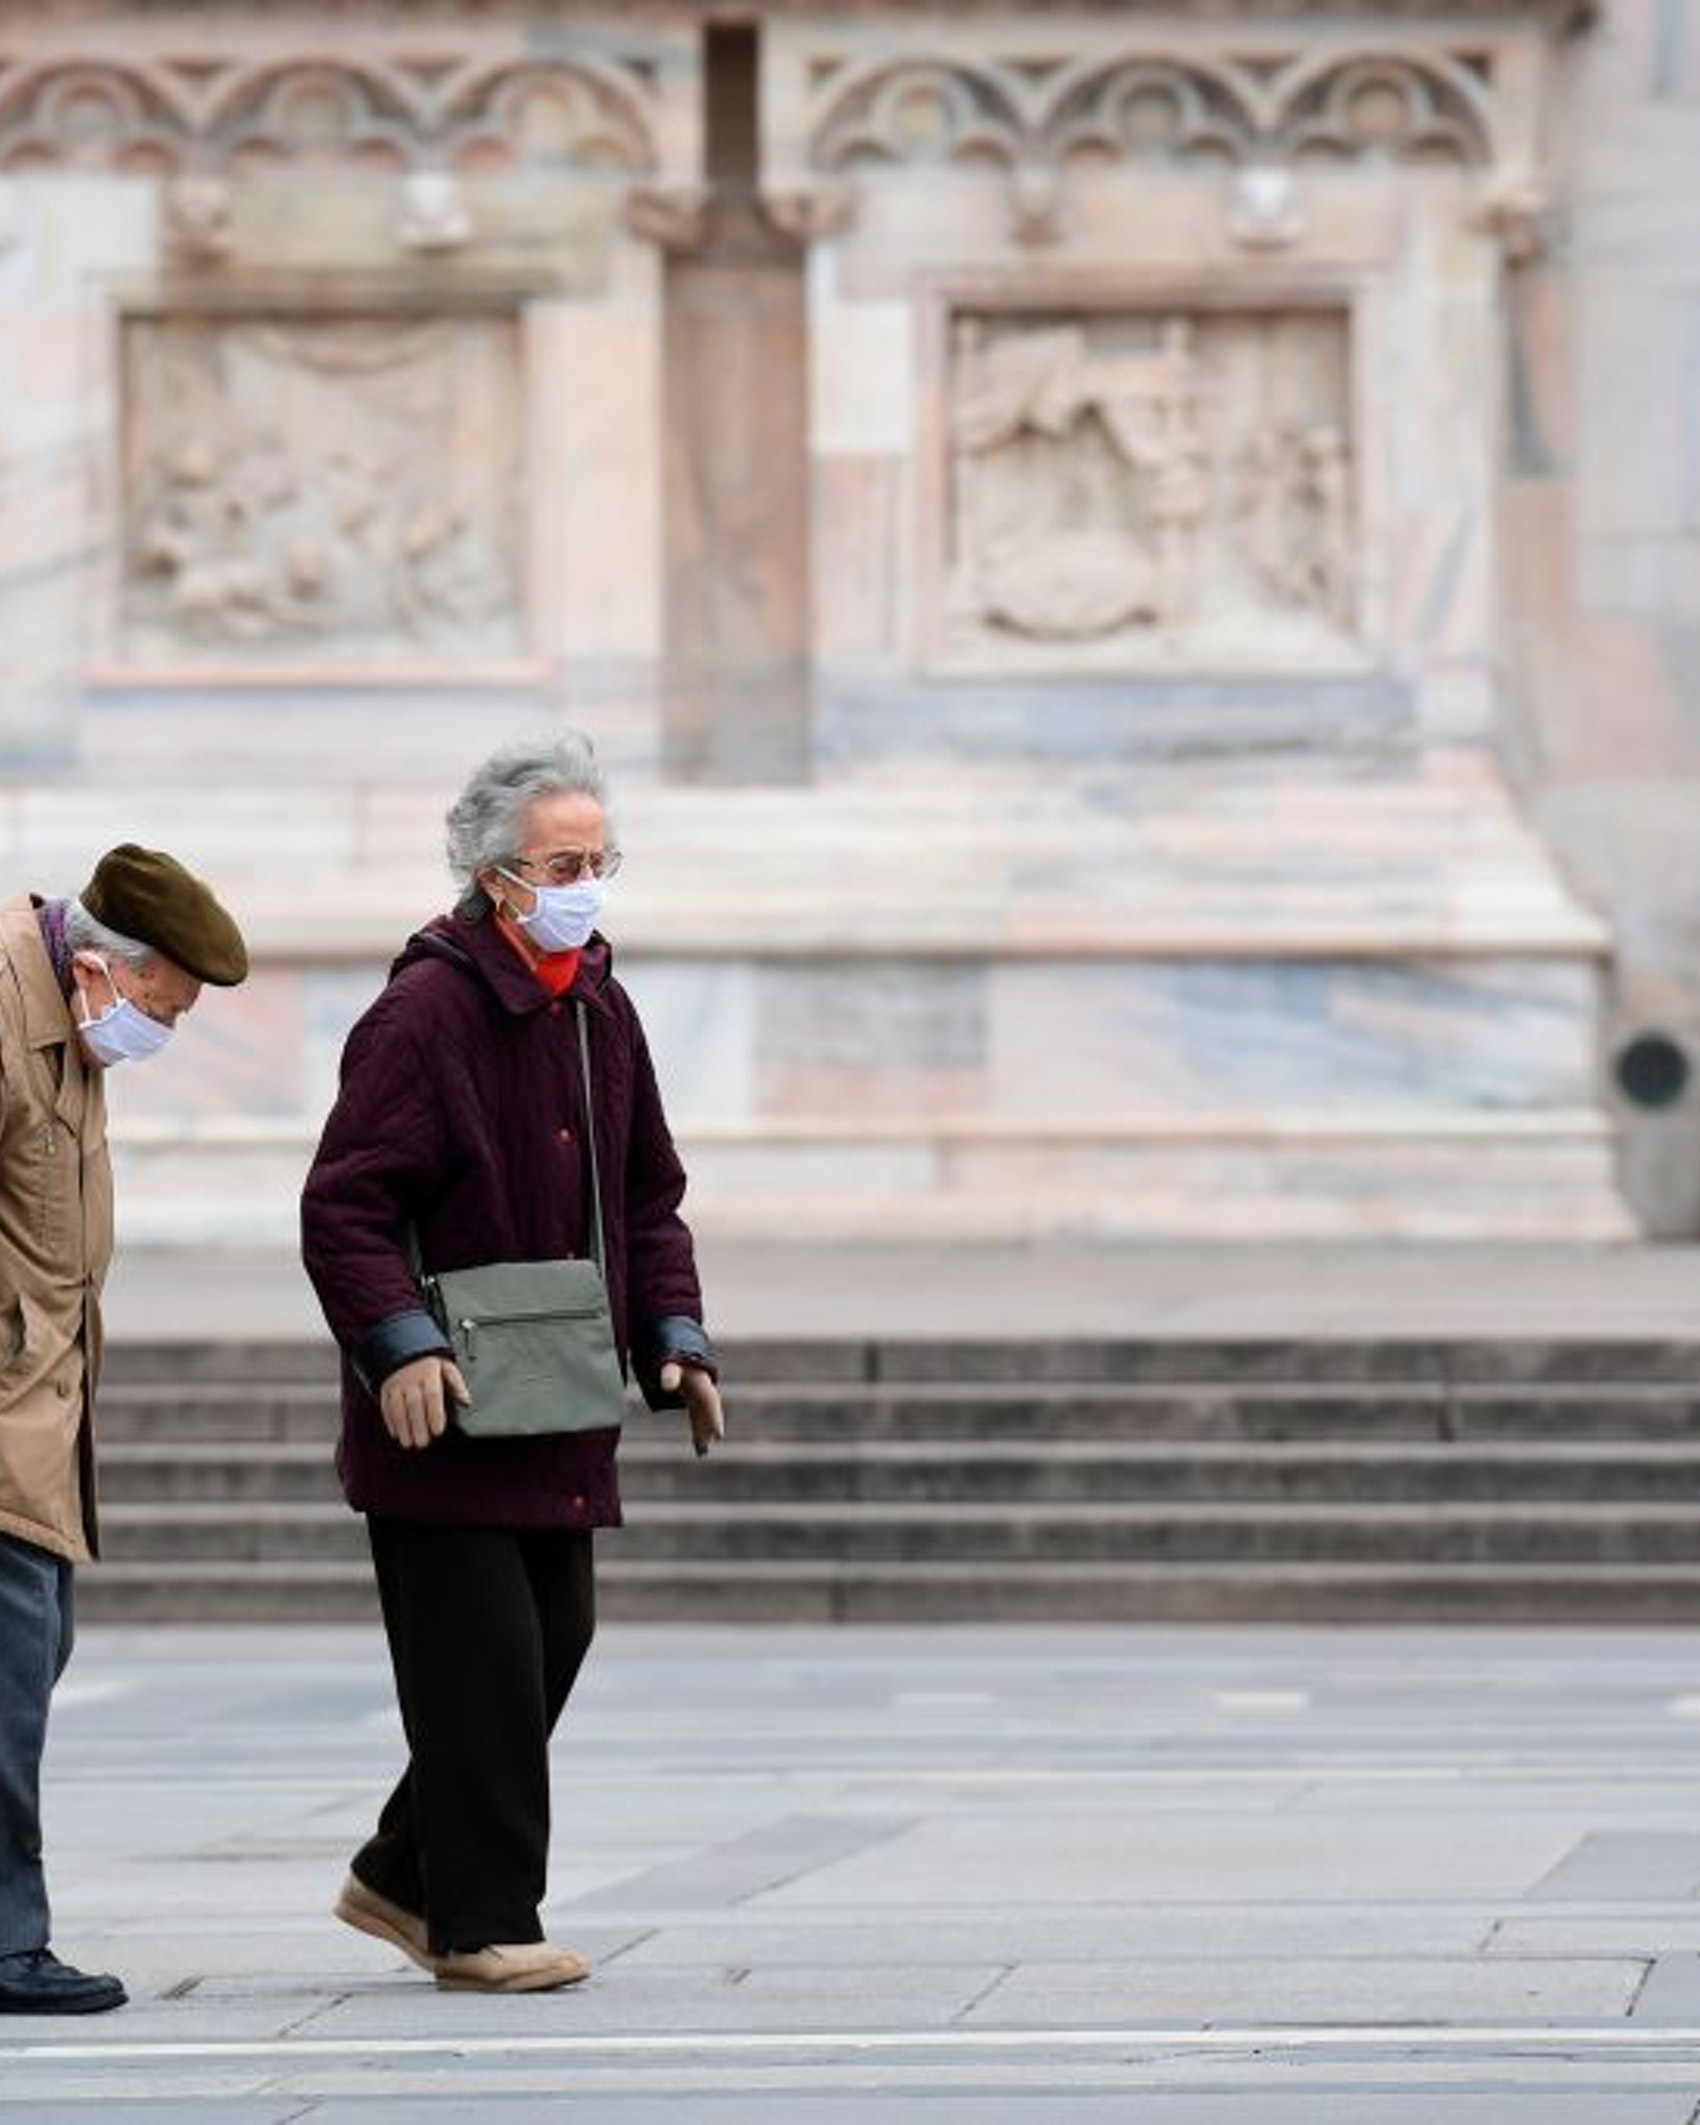 An elderly couple wearing protective masks walk across a deserted Duomo square in Milan on March 31, 2020, during the country's lockdown aimed at curbing the spread of the COVID-19 infection, caused by the novel coronavirus. (Photo by MIGUEL MEDINA / AFP) (Photo by MIGUEL MEDINA/AFP via Getty Images)